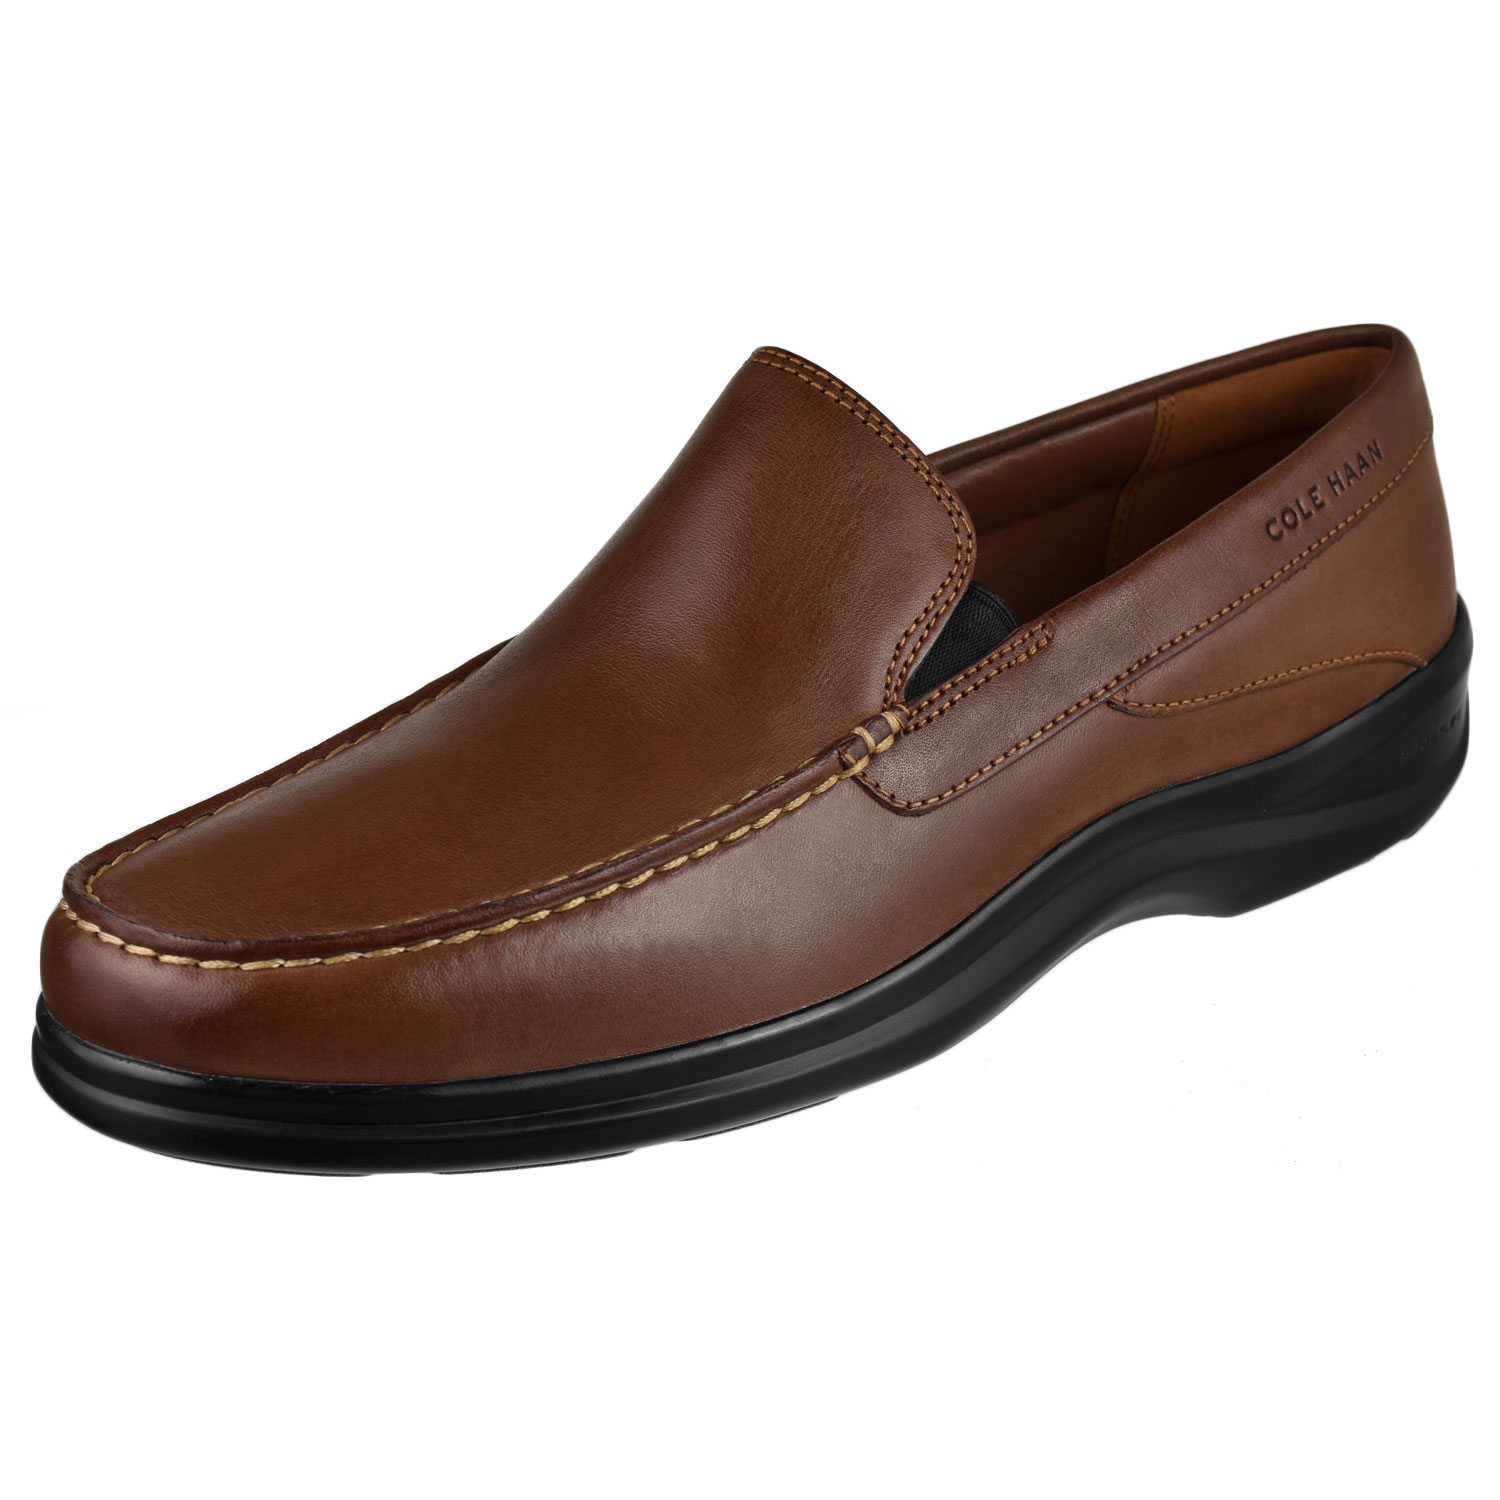 d2d4eb650f9 Cole Haan Men s Shoes Santa Barbara Twin Gore Loafer